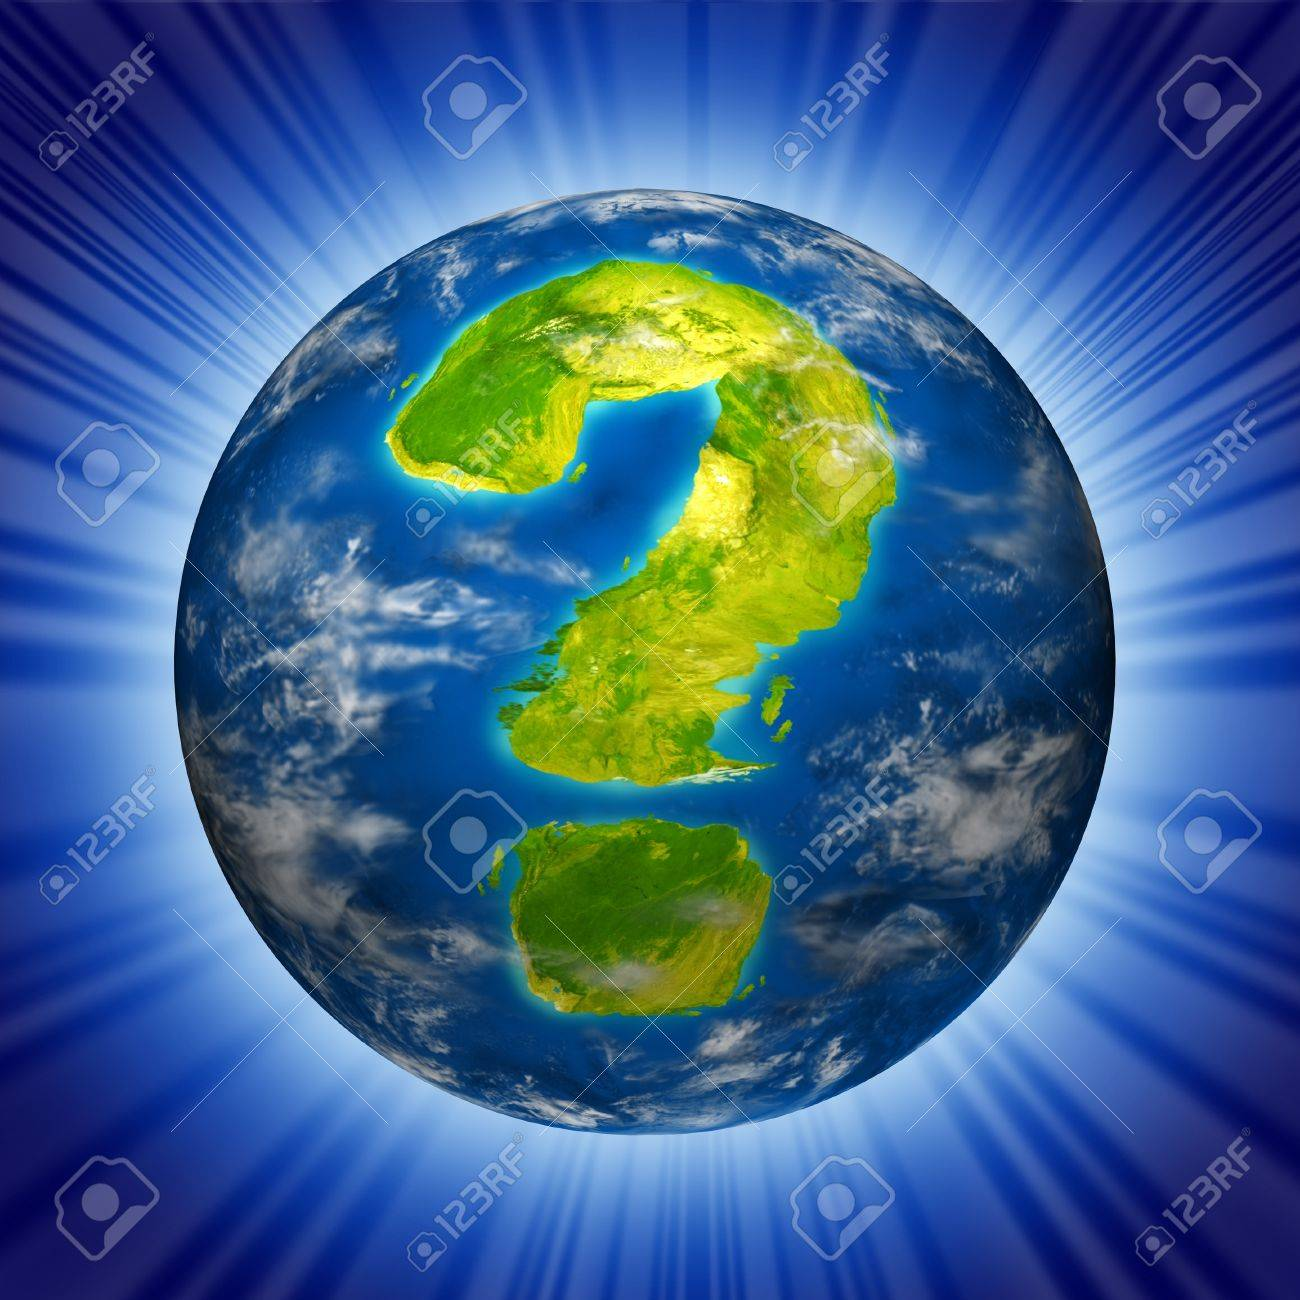 Risk and global uncertainty representing the concept of business and economic health of the planet earth as well as geo political and environmental situation. Stock Photo - 10909960